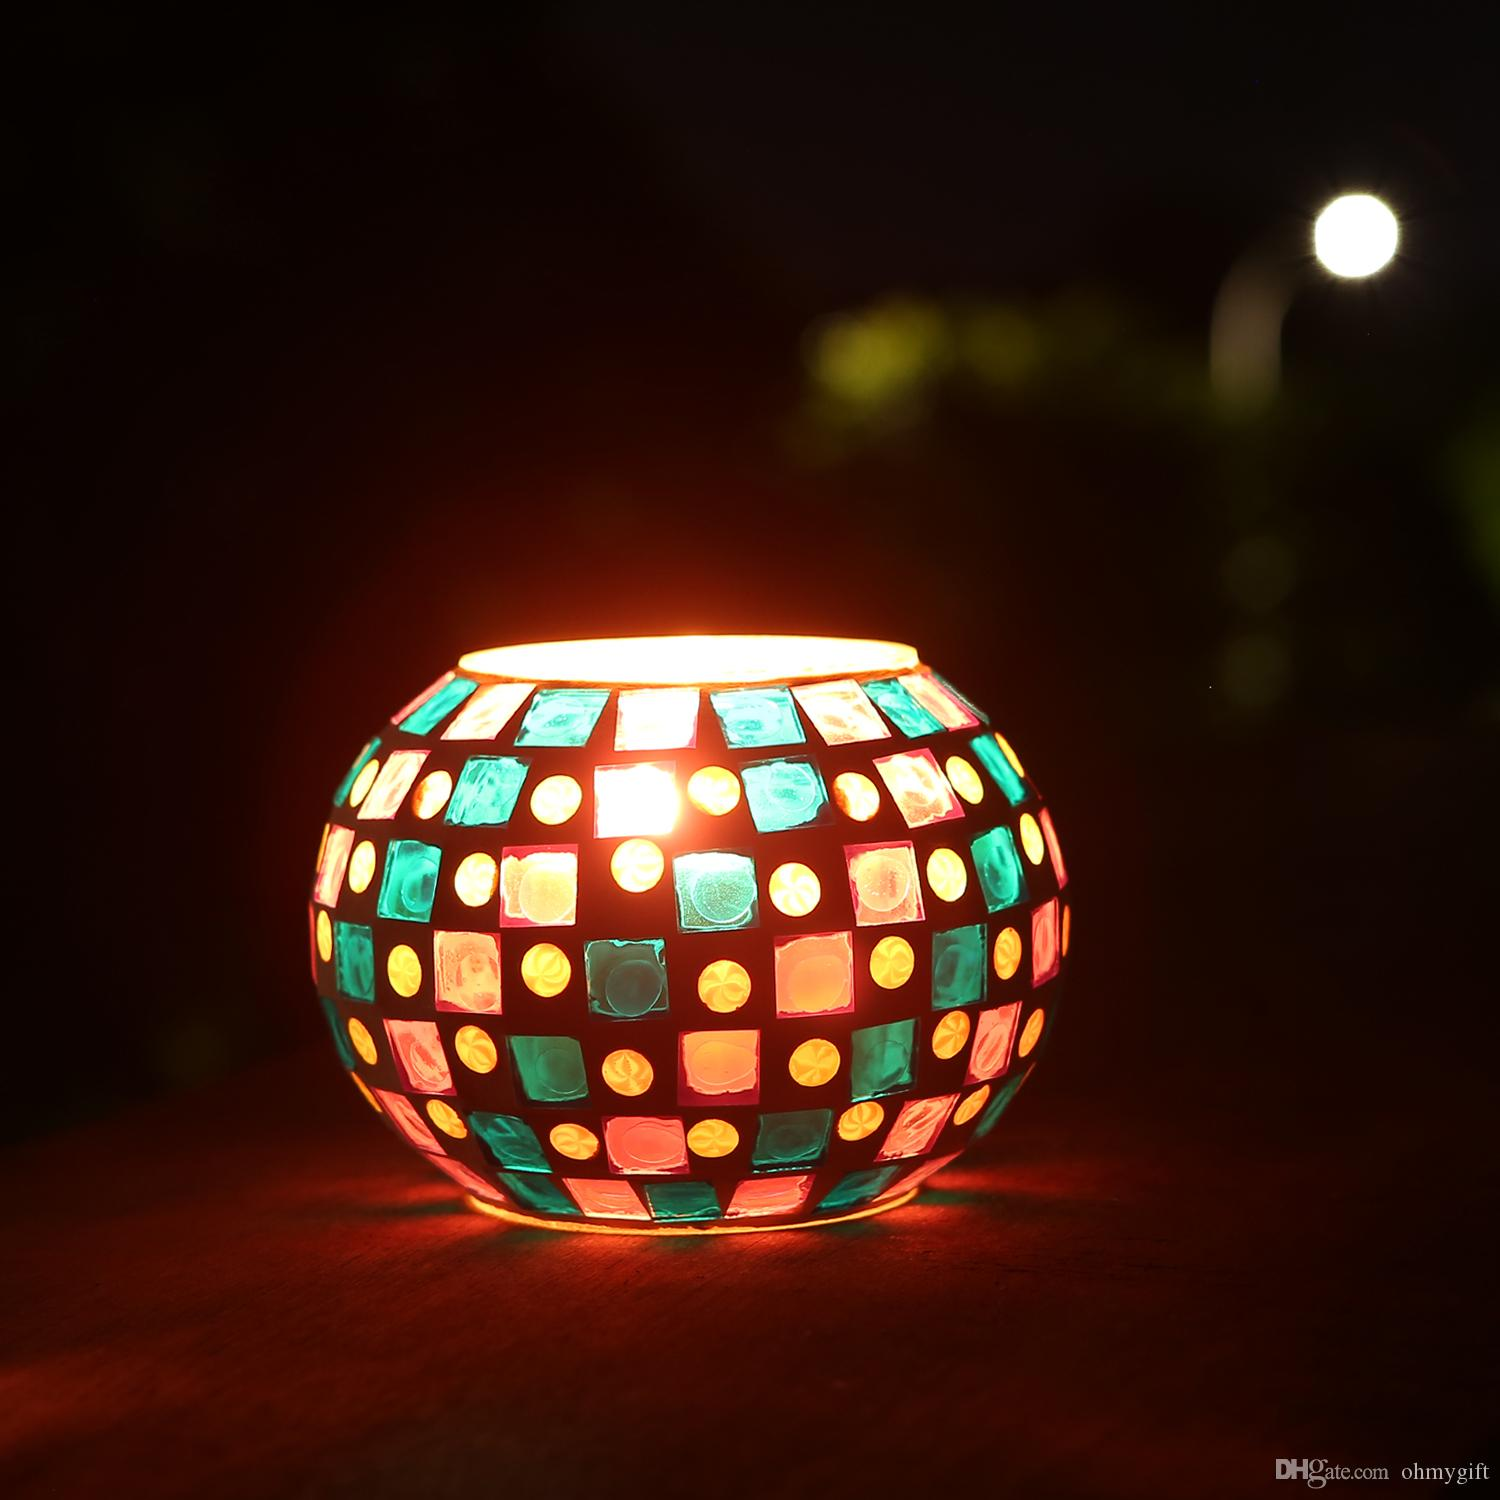 Magicnight Color Changing Mosaic Solar Table Light, Glass Bowl Small Disco Globe Ball Night Lamp for Garden Patio Porch